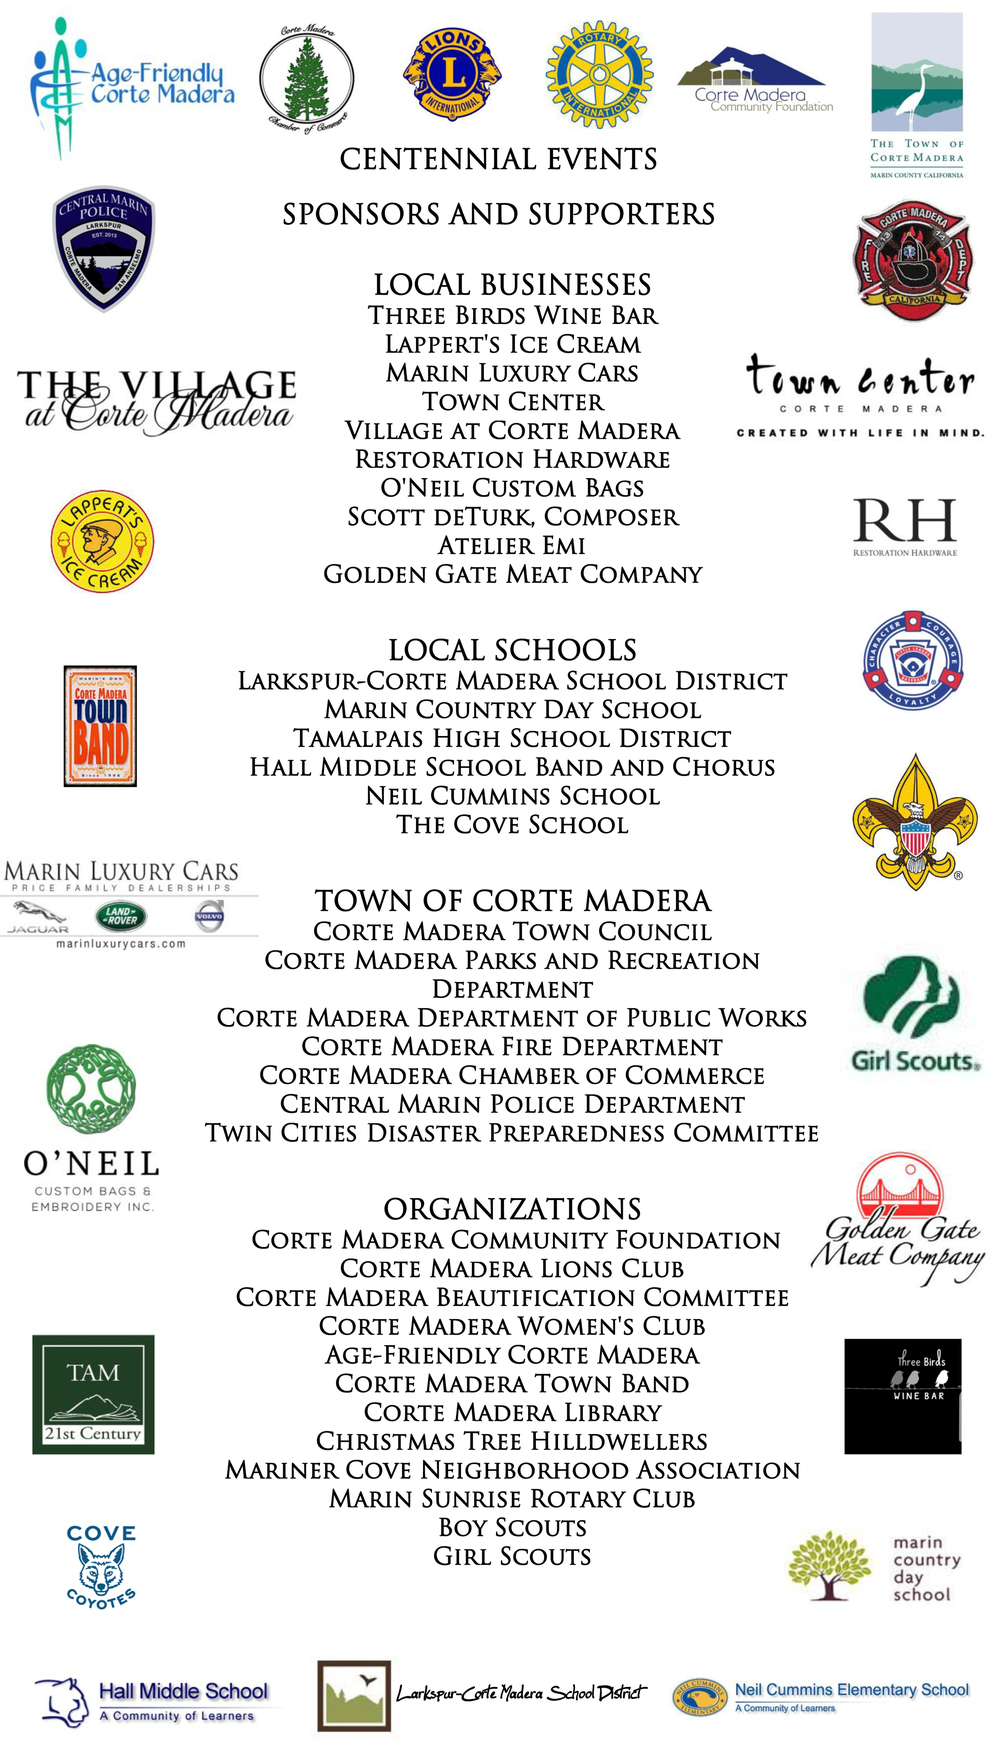 CENTENNIAL EVENT SPONSORS AND SUPPORTERS JAN 20pdf.jpg